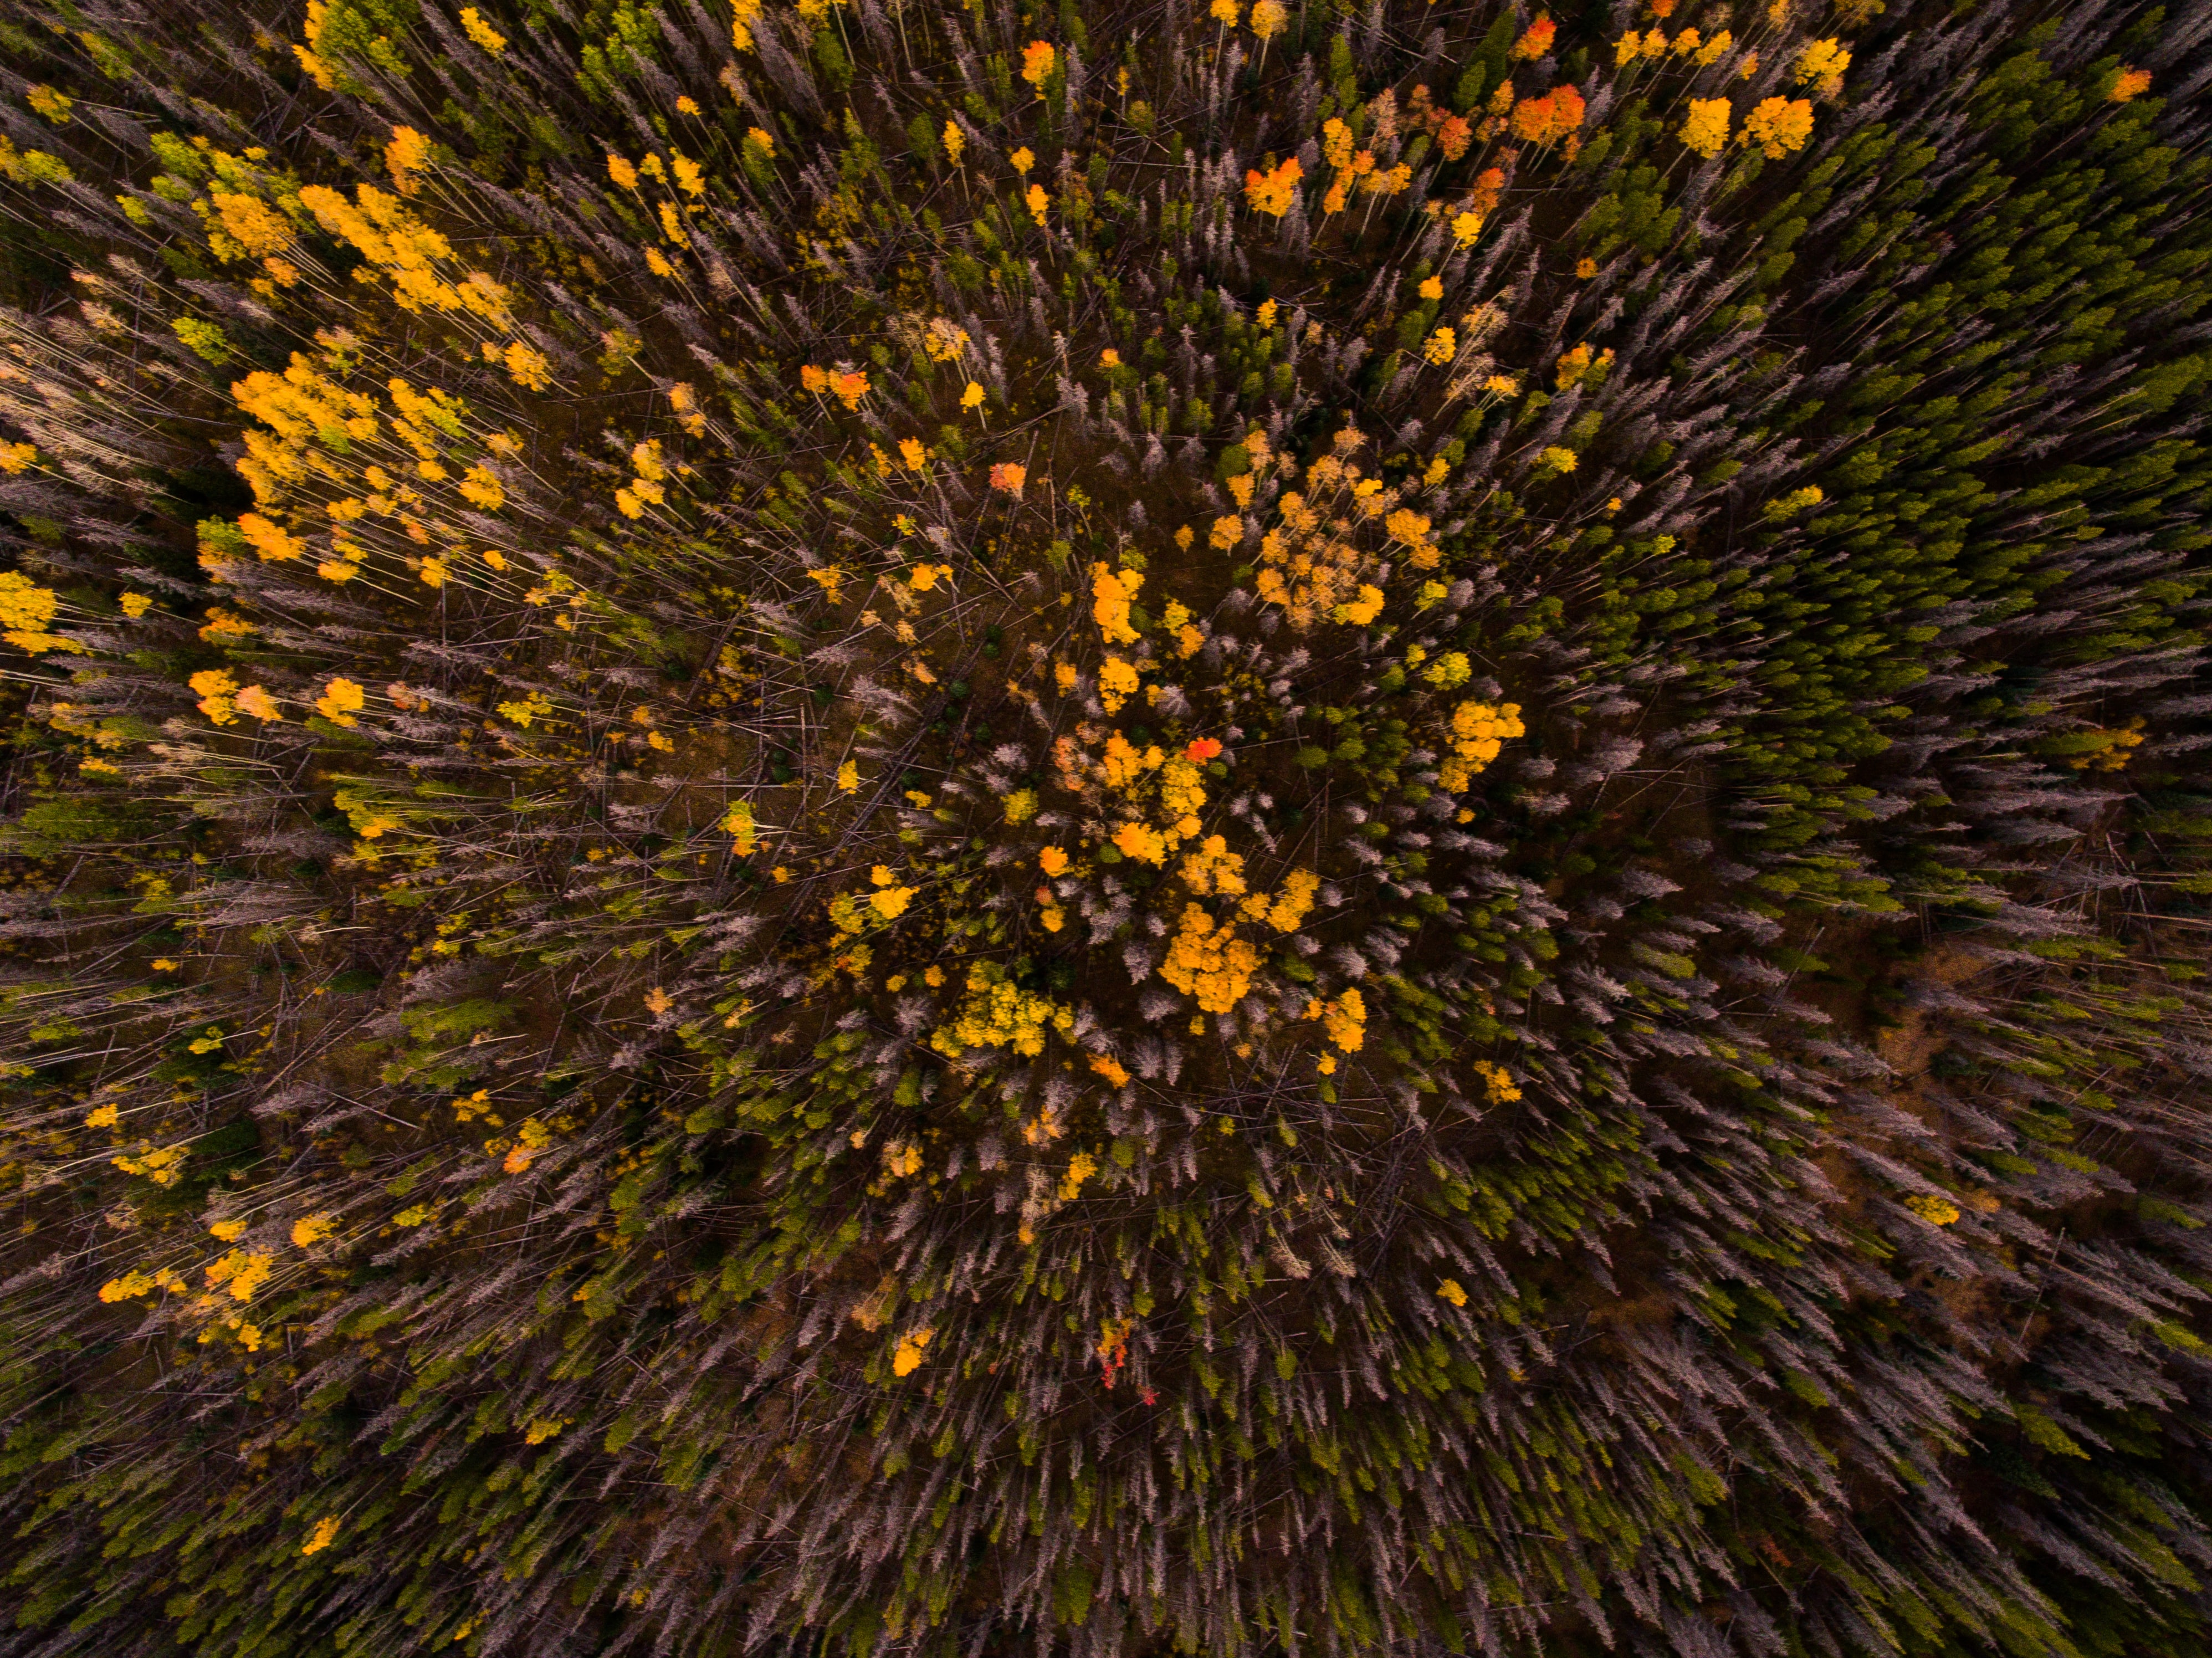 A drone shot of a forest with colorful leaf canopies in Silverthorne